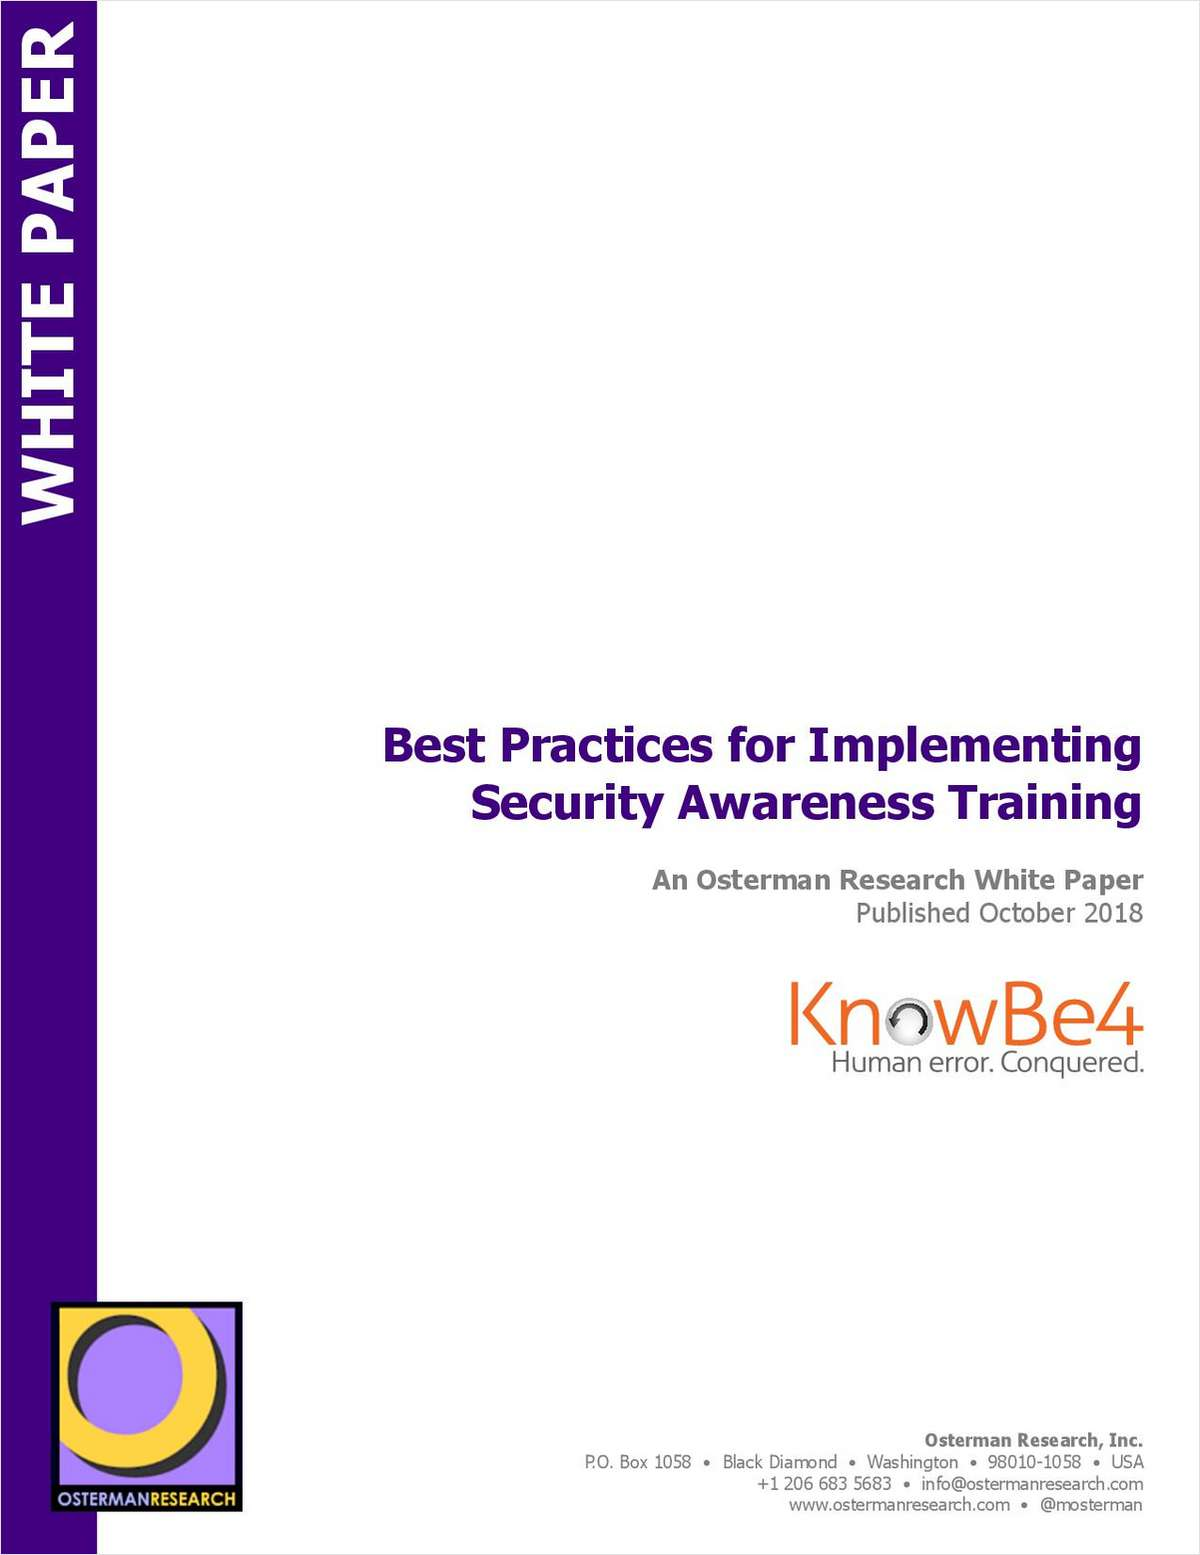 Best Practices for Implementing Security Awareness Training, Free